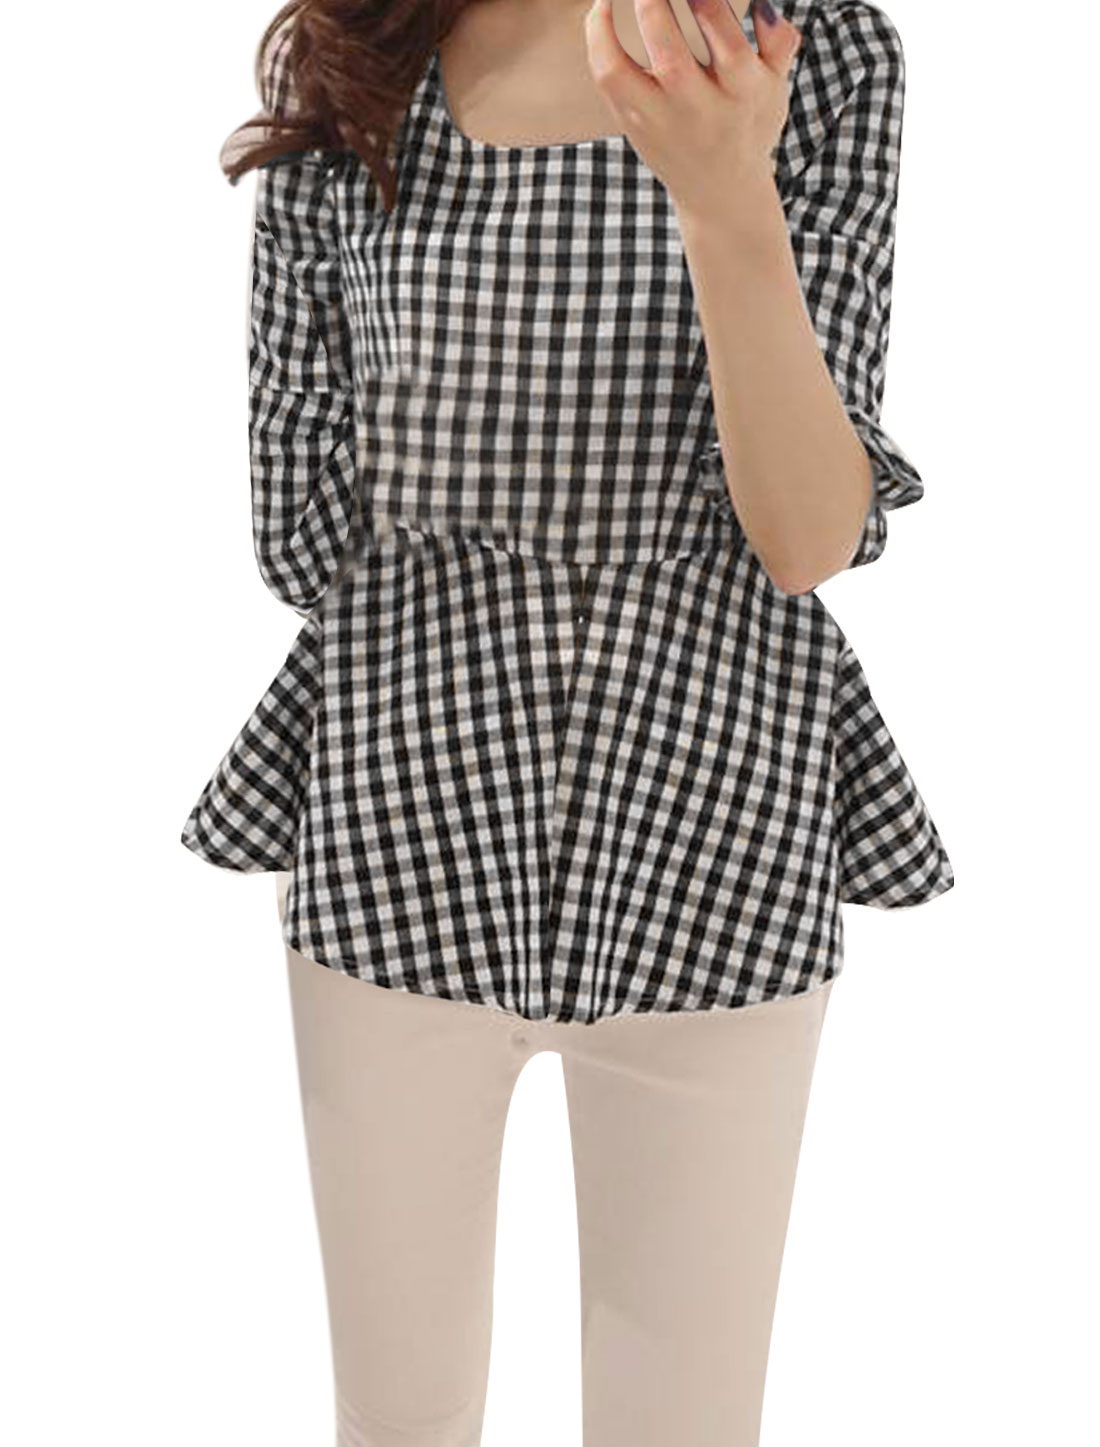 Ladies Round Neck Elbow Bell Sleeve Black White Check Pattern Peplum Tops XS